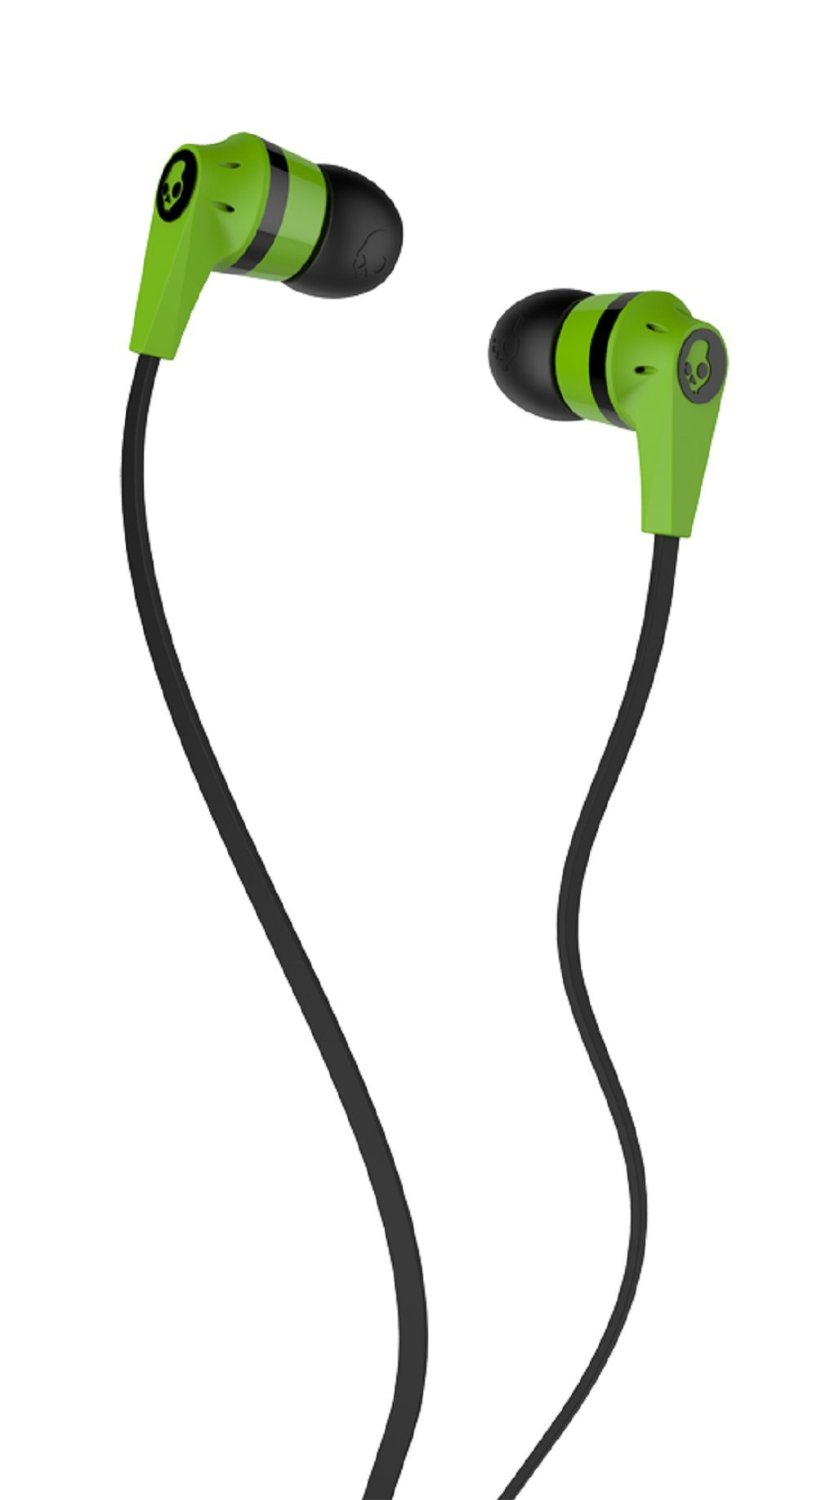 Casti Skullcandy Ink'd Lime Green